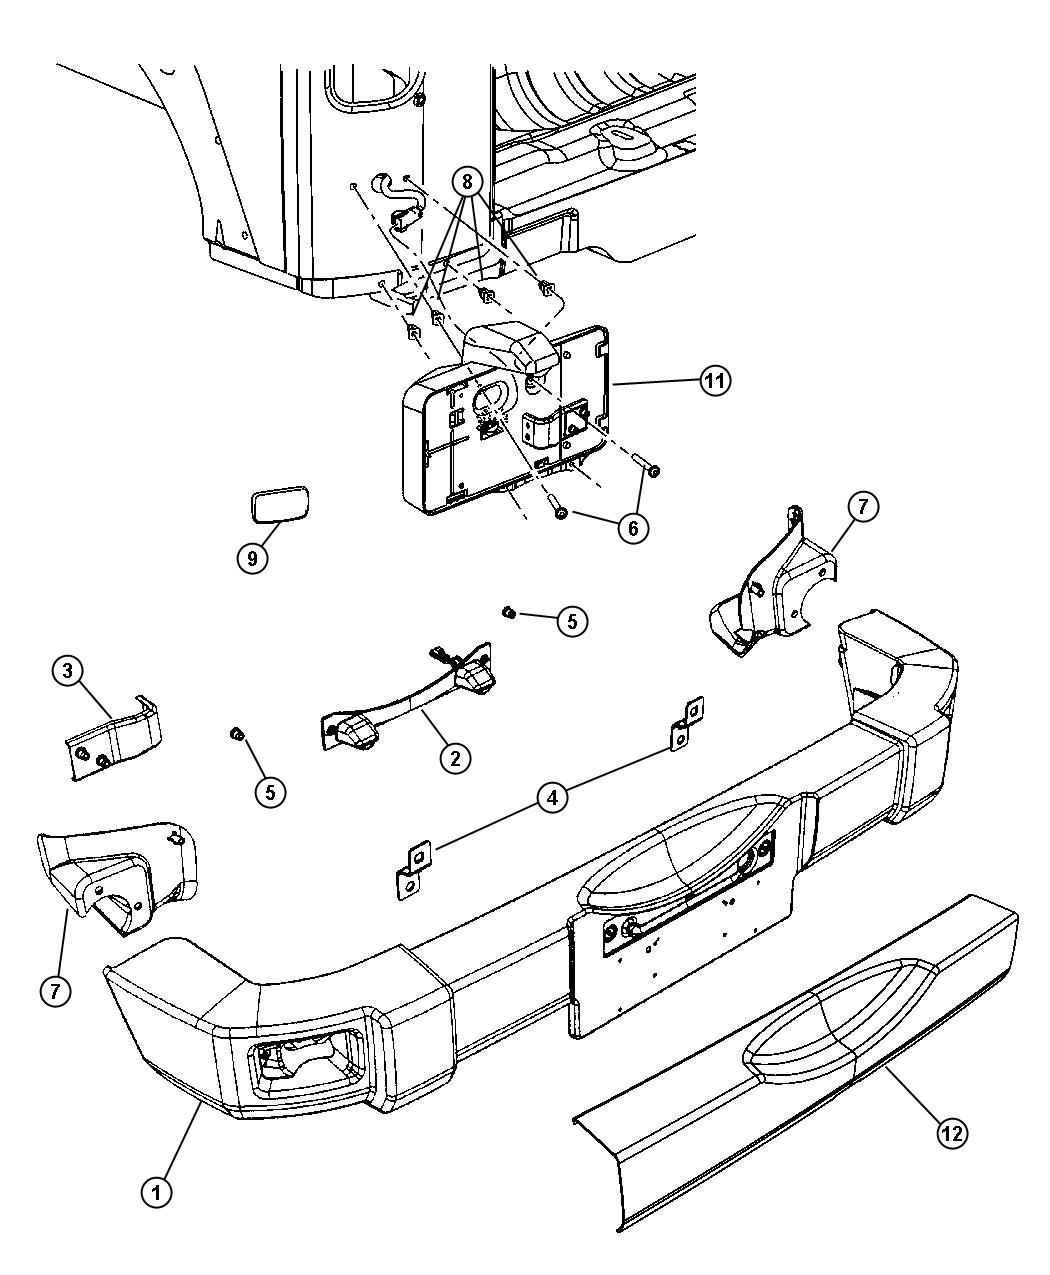 jeep grand cherokee rear bumper parts diagram